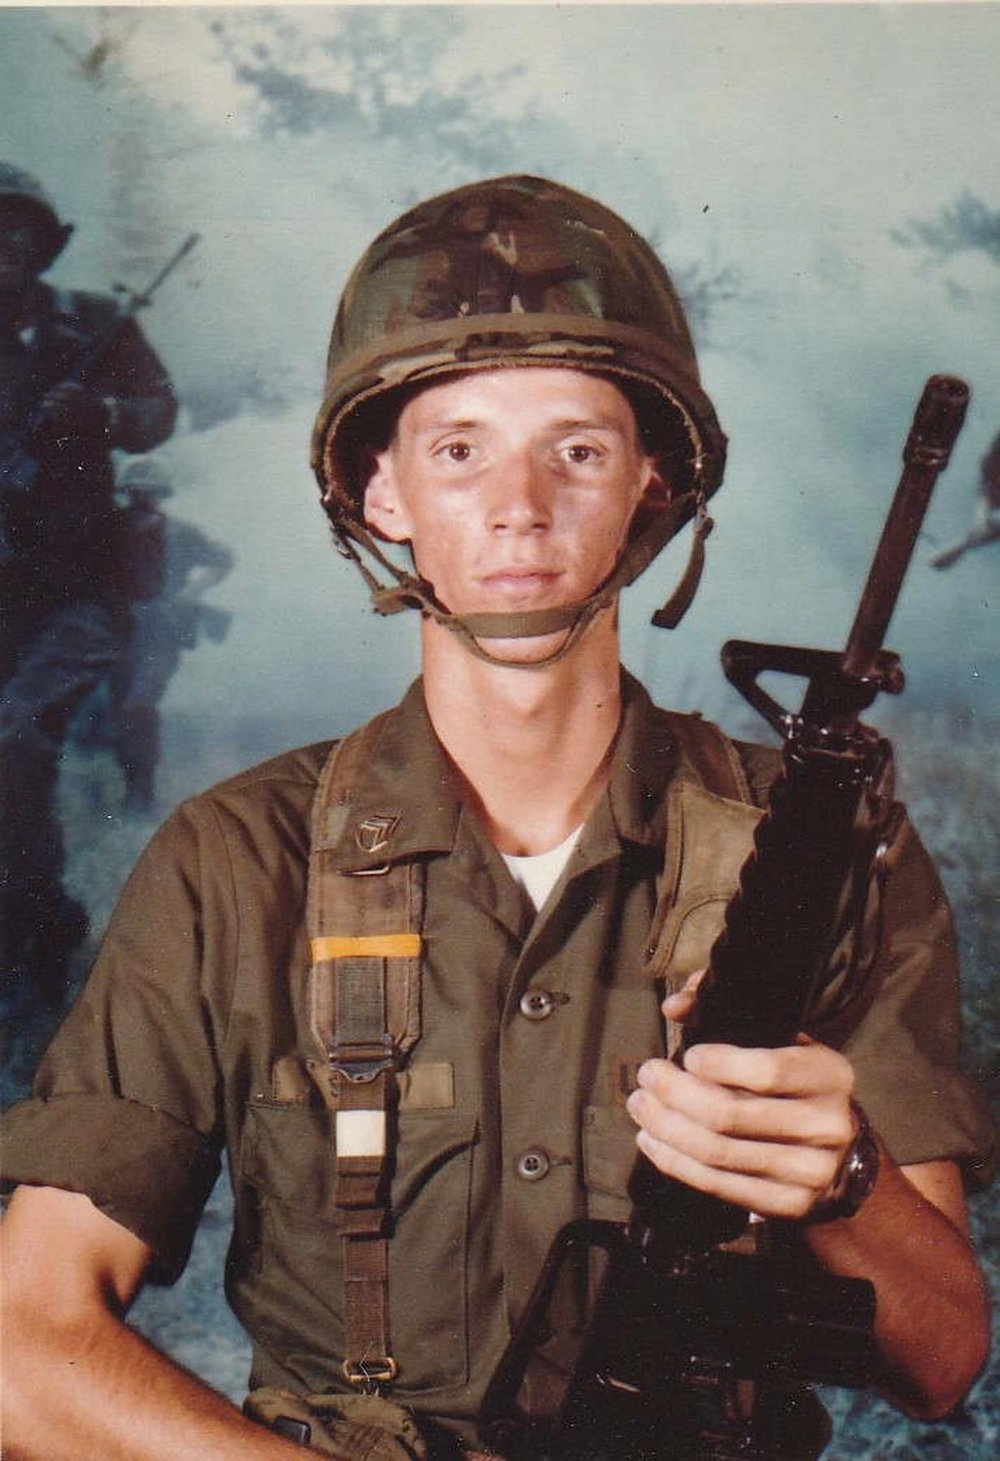 John Sims when he was a scared young private at the start of basic training, on August 6, 1980. Courtesy of John Sims.